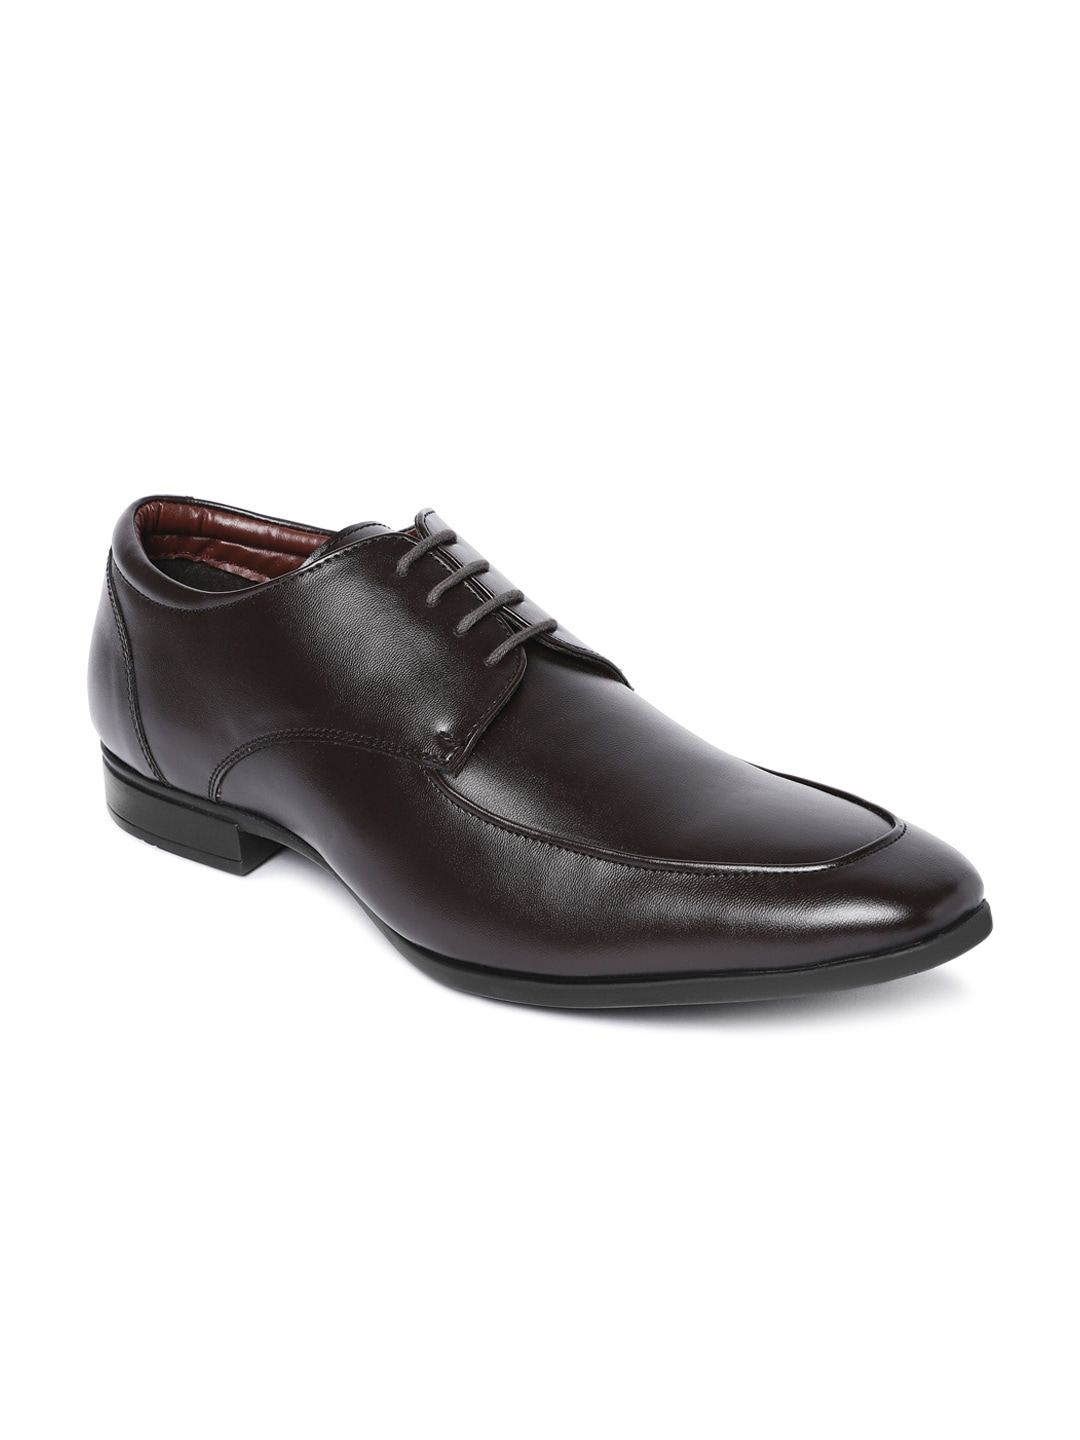 Get Bata Brown Solid Formal Oxford Men's Shoes Online At Best Price